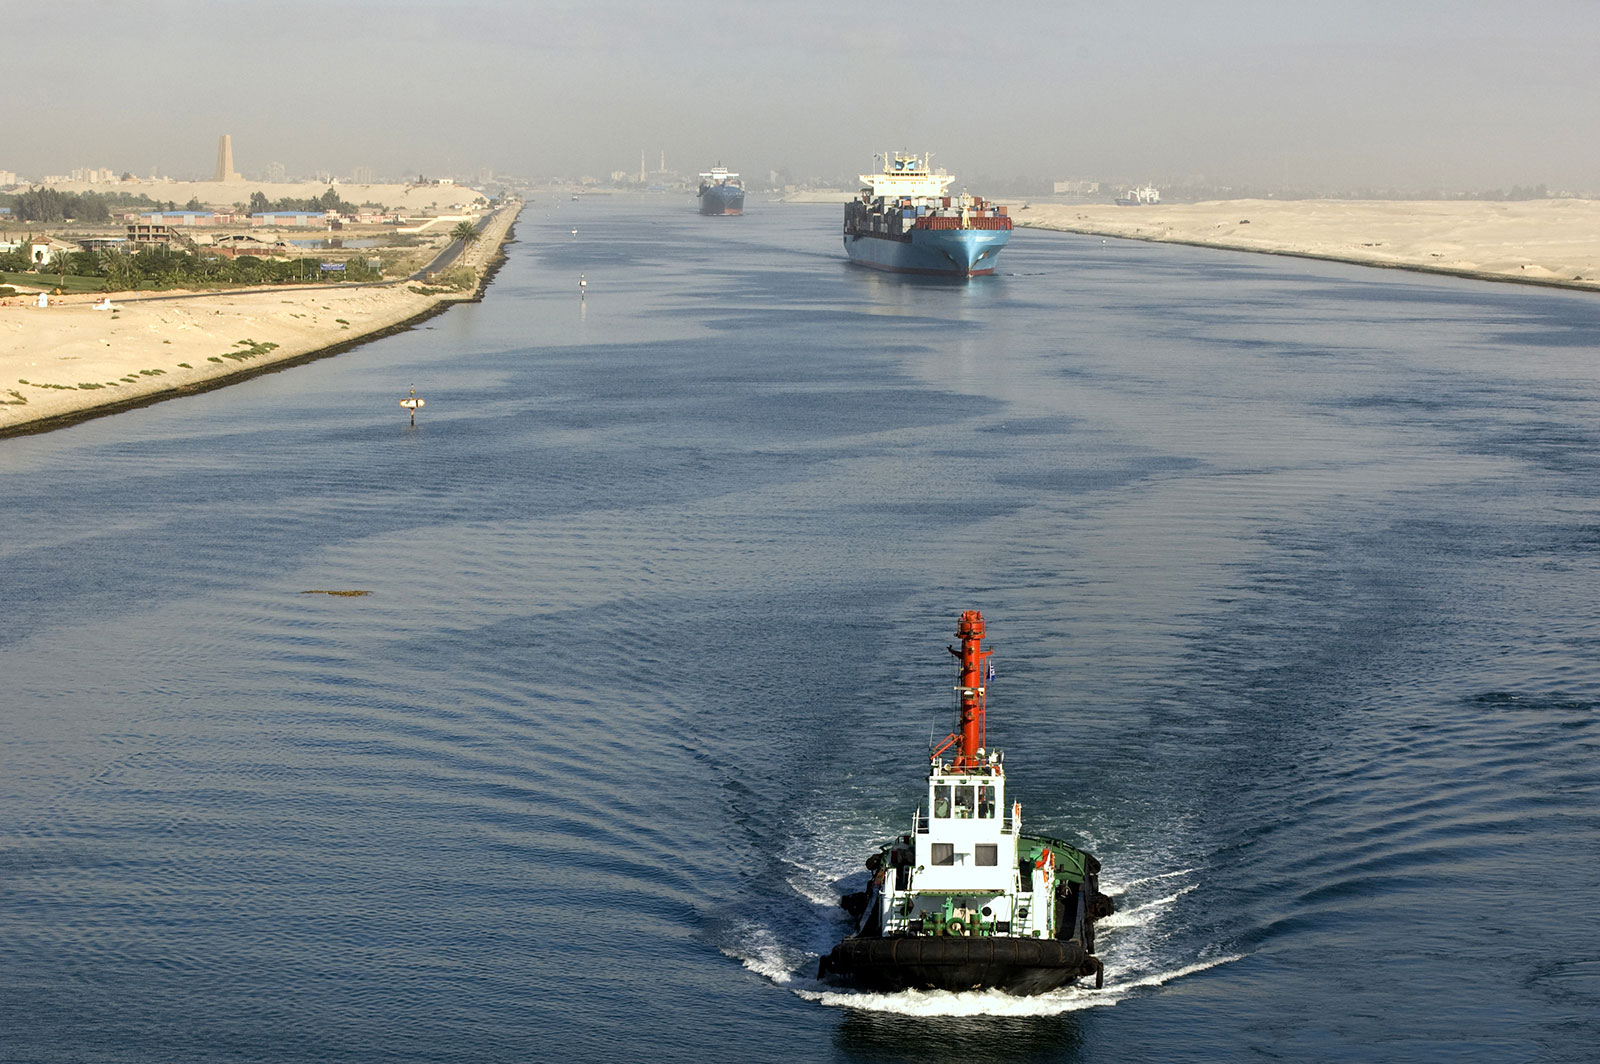 150 years of the Suez Canal-Flashback in maritime history–Suez Canal opened to shipping 17 November 1869